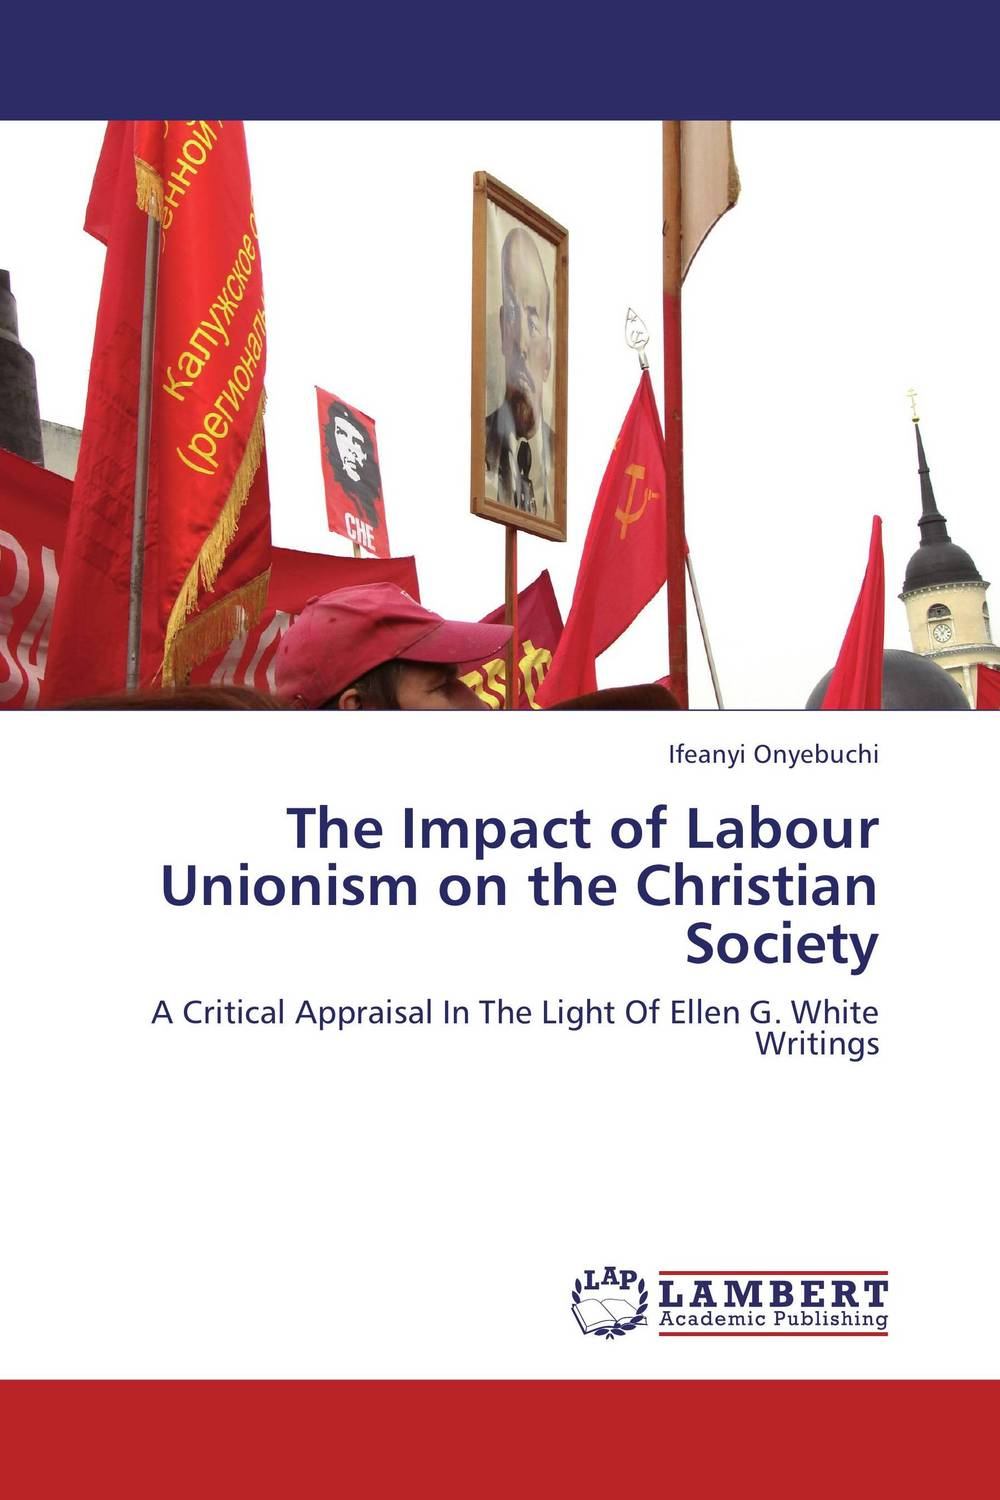 The Impact of Labour Unionism on the Christian Society the impact of labour unionism on the christian society